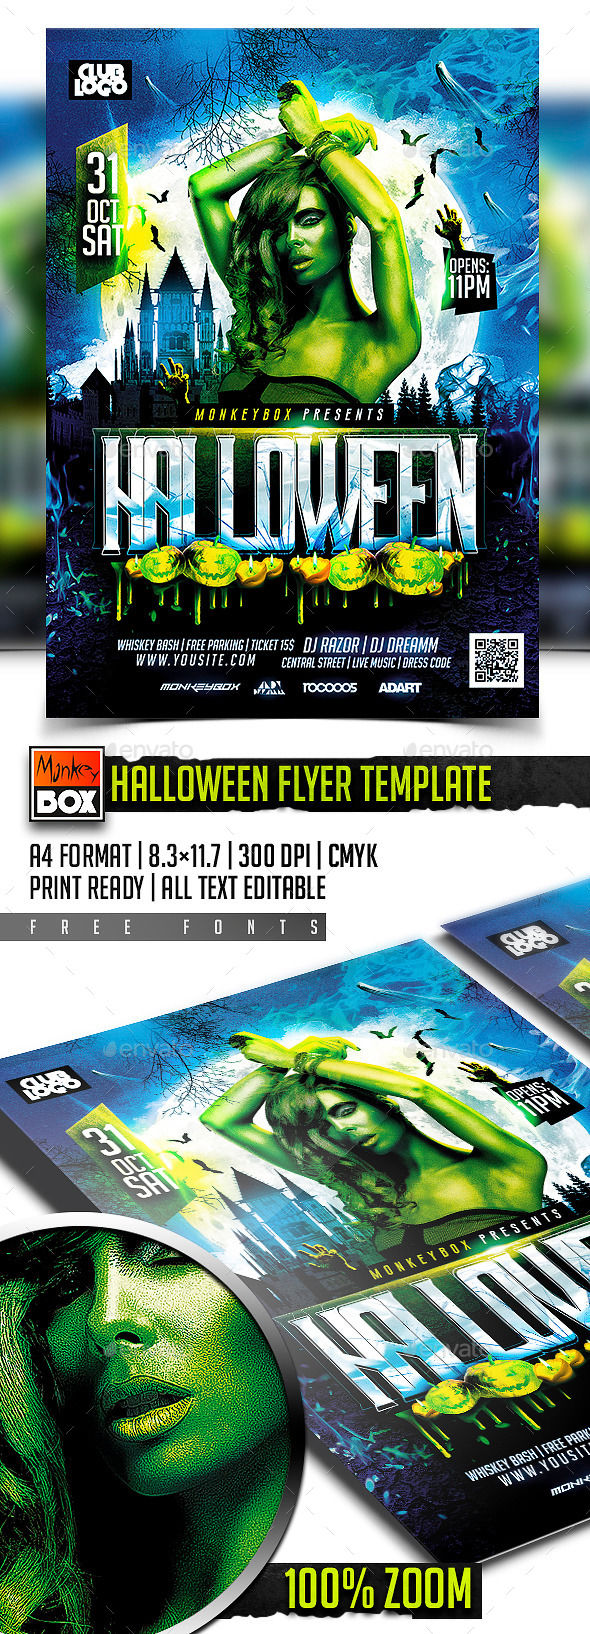 Halloween Flyer Template by MonkeyBOX (Halloween party flyer)